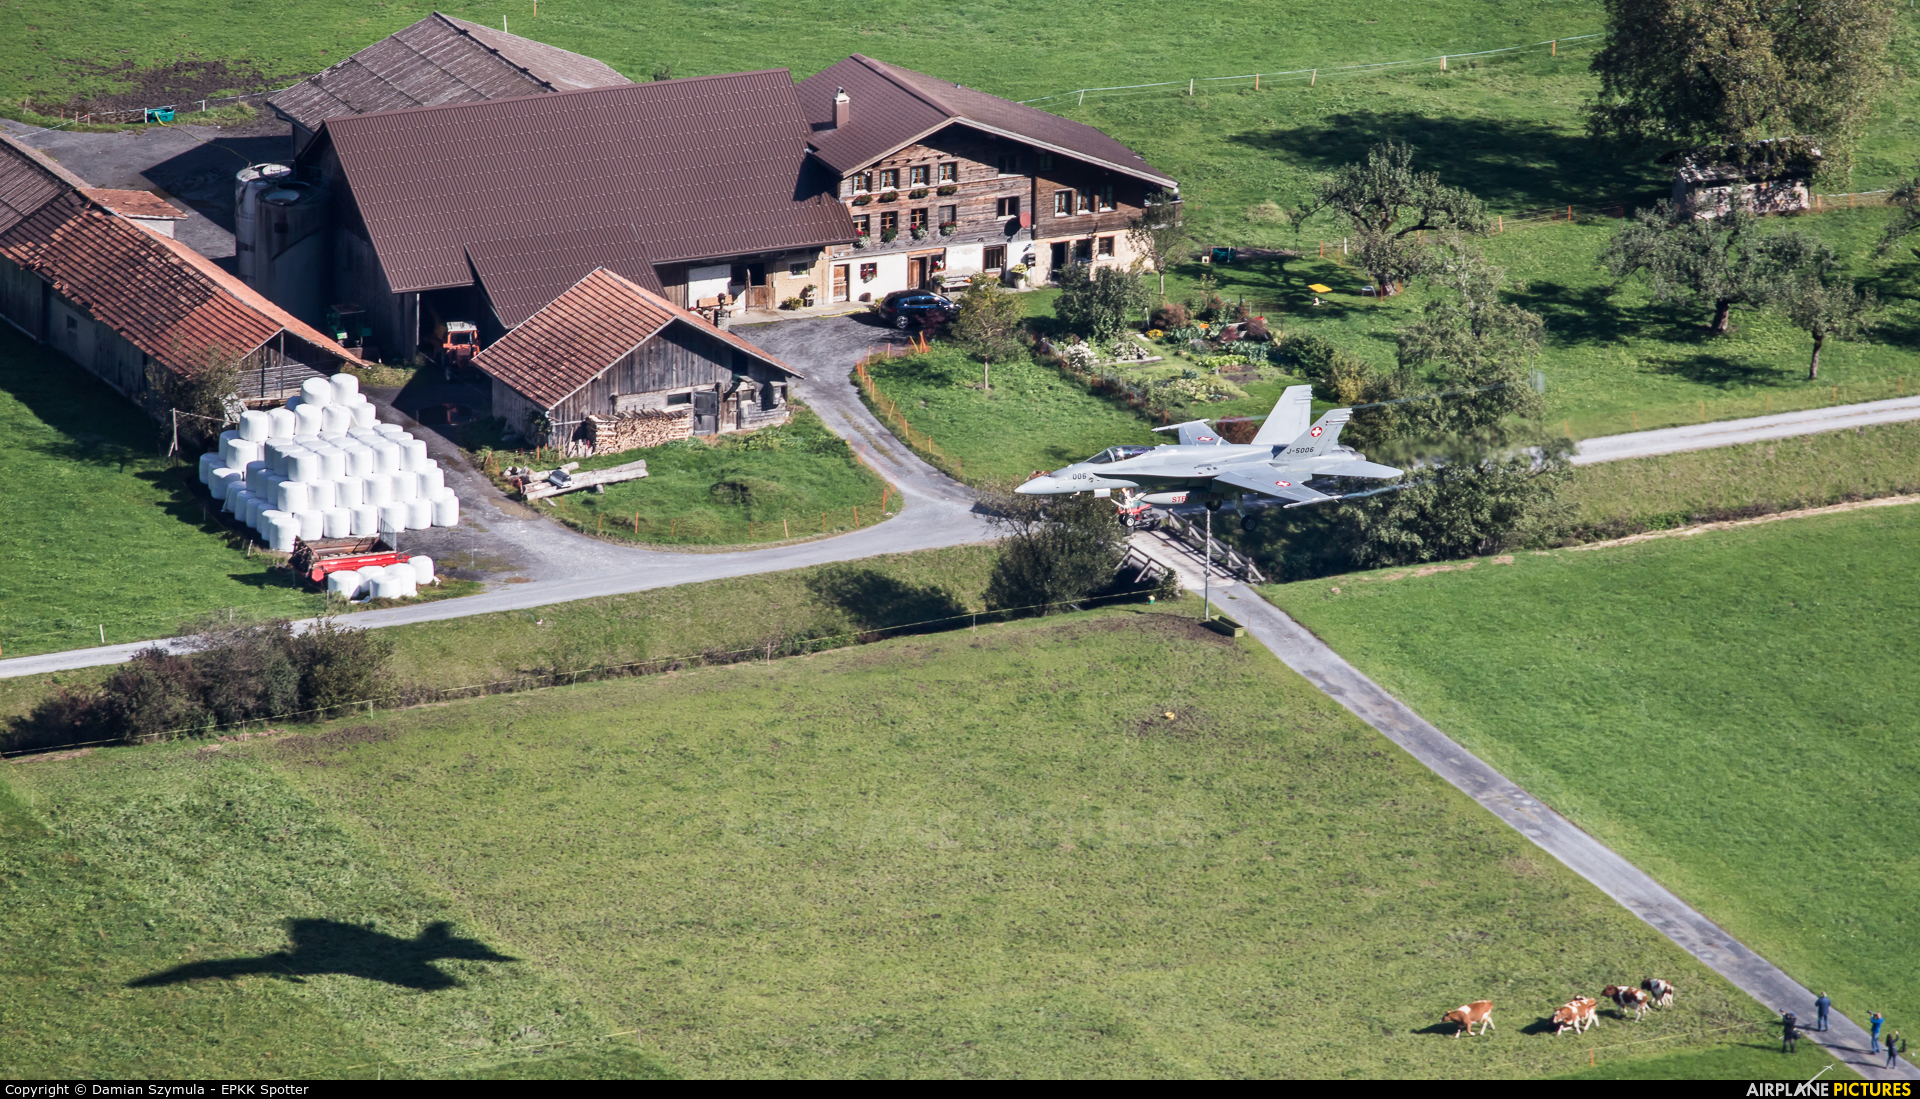 Switzerland - Air Force J-5006 aircraft at Meiringen